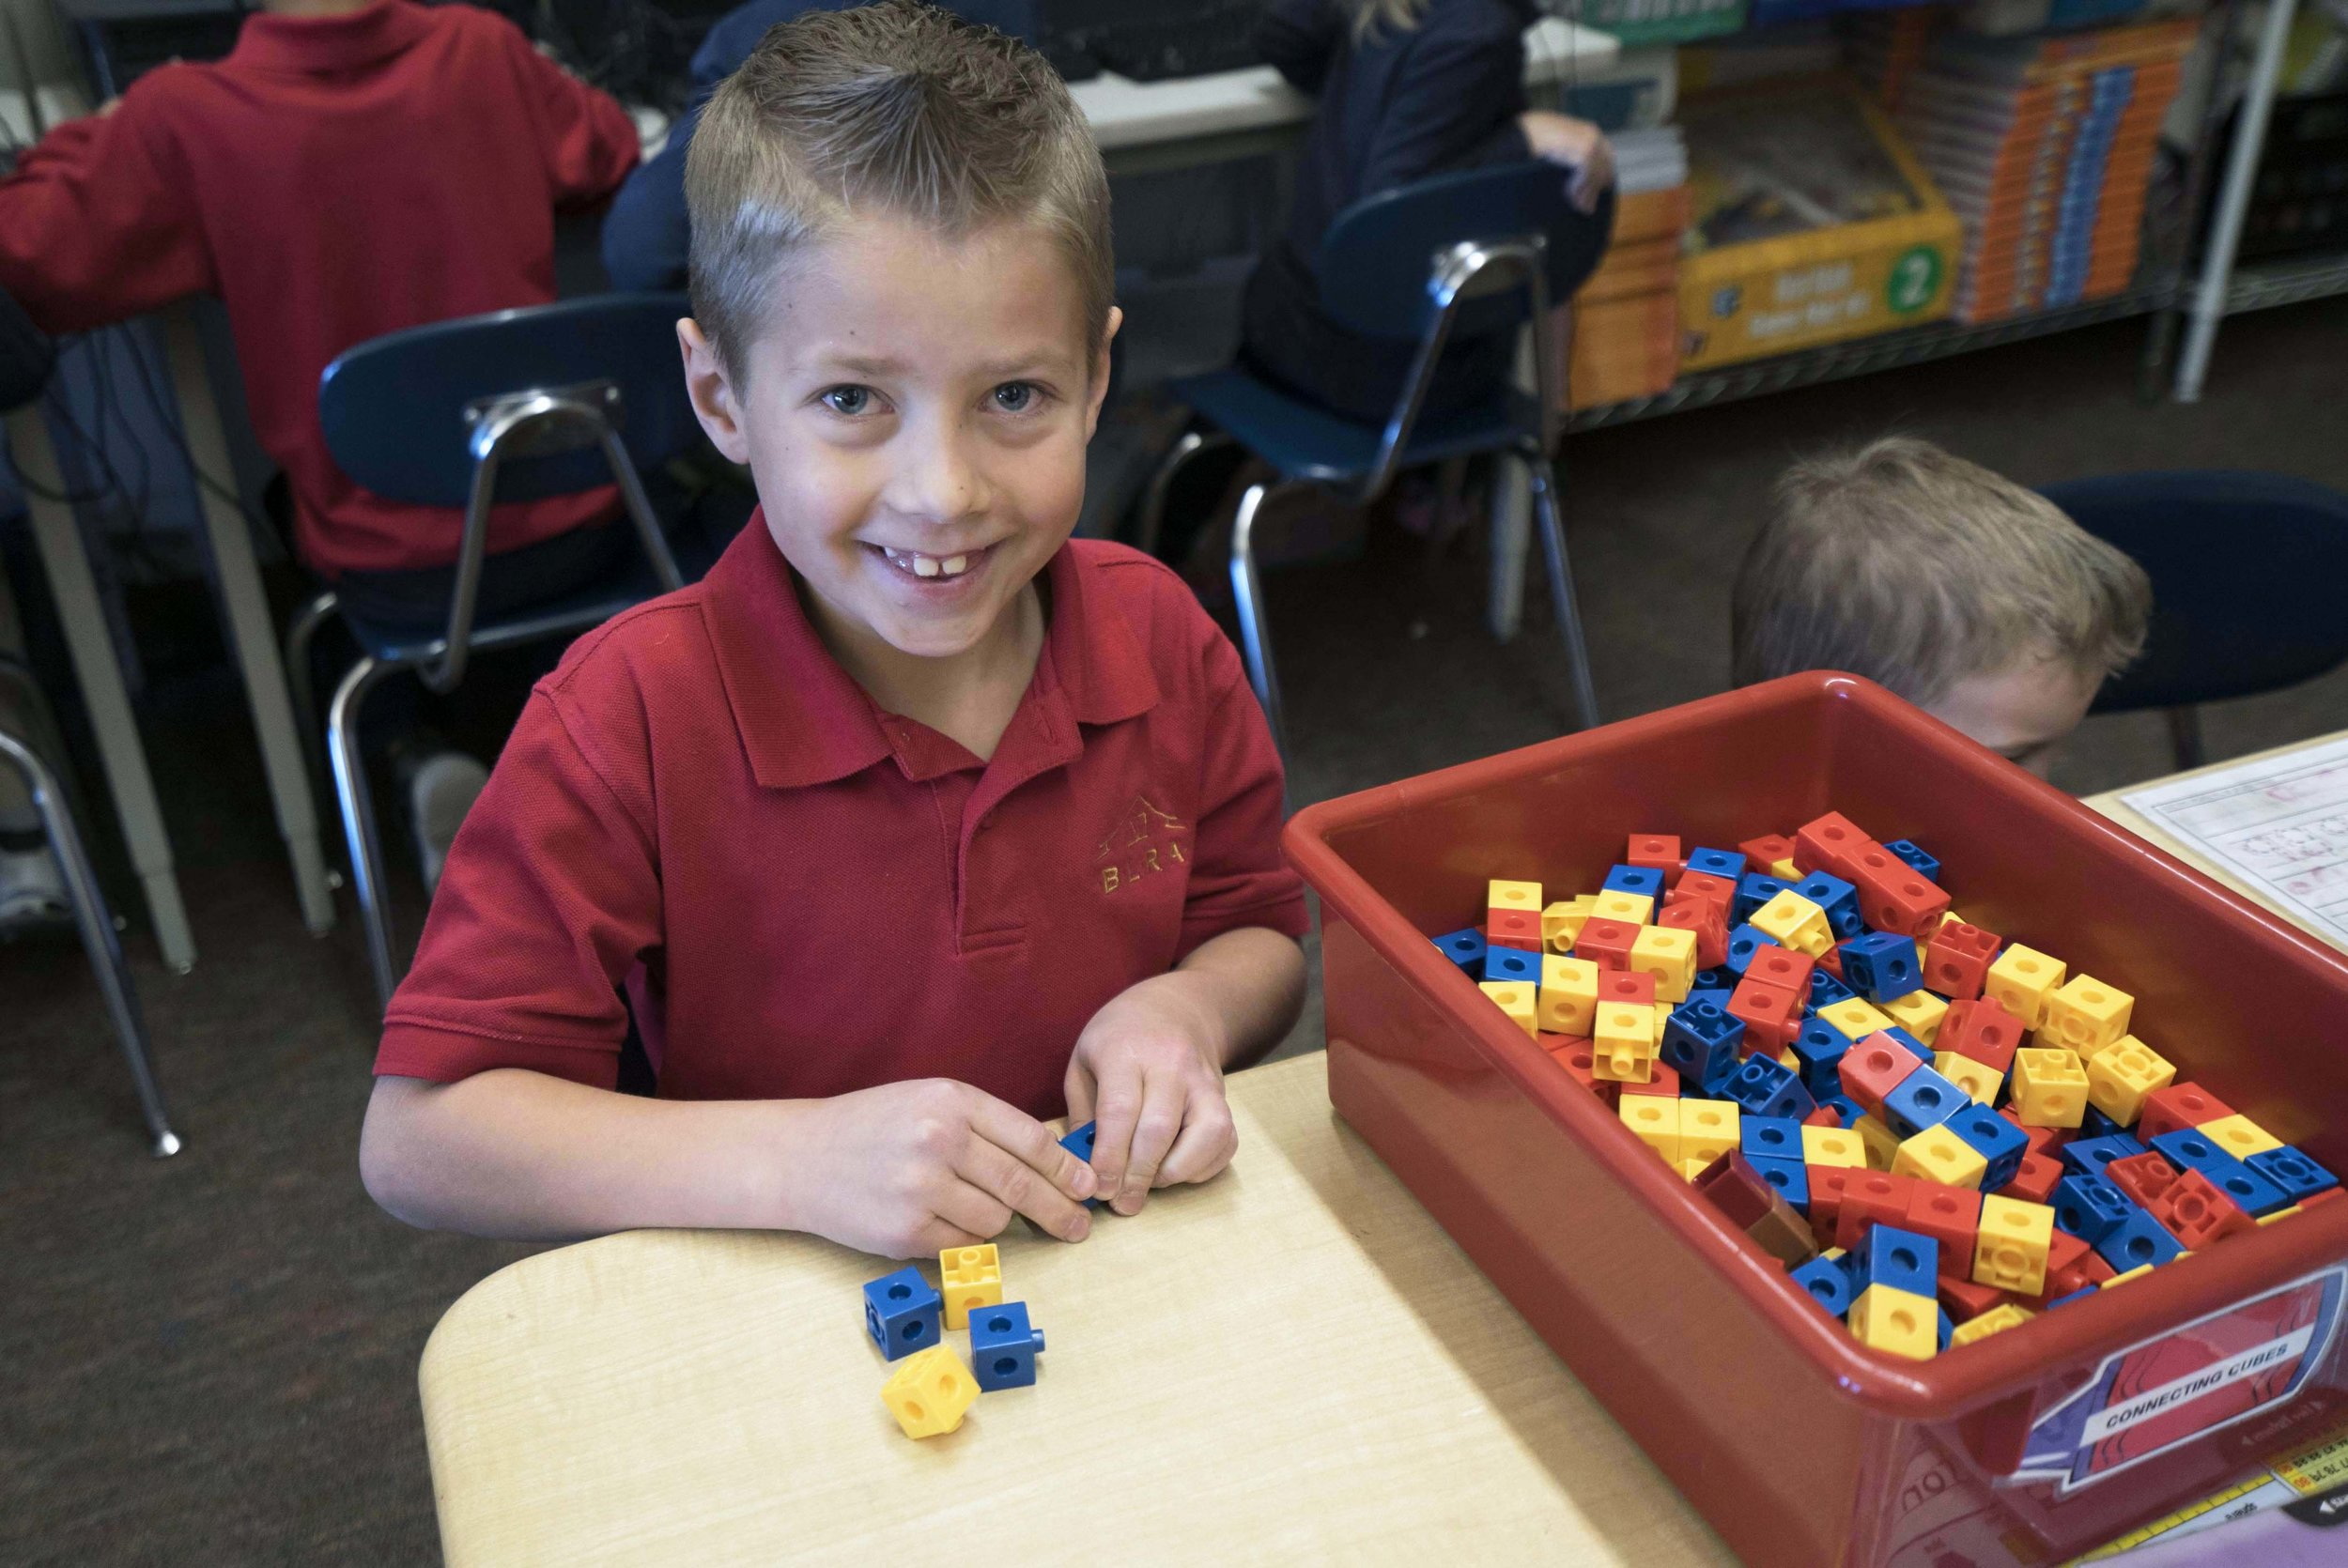 Student working with blocks